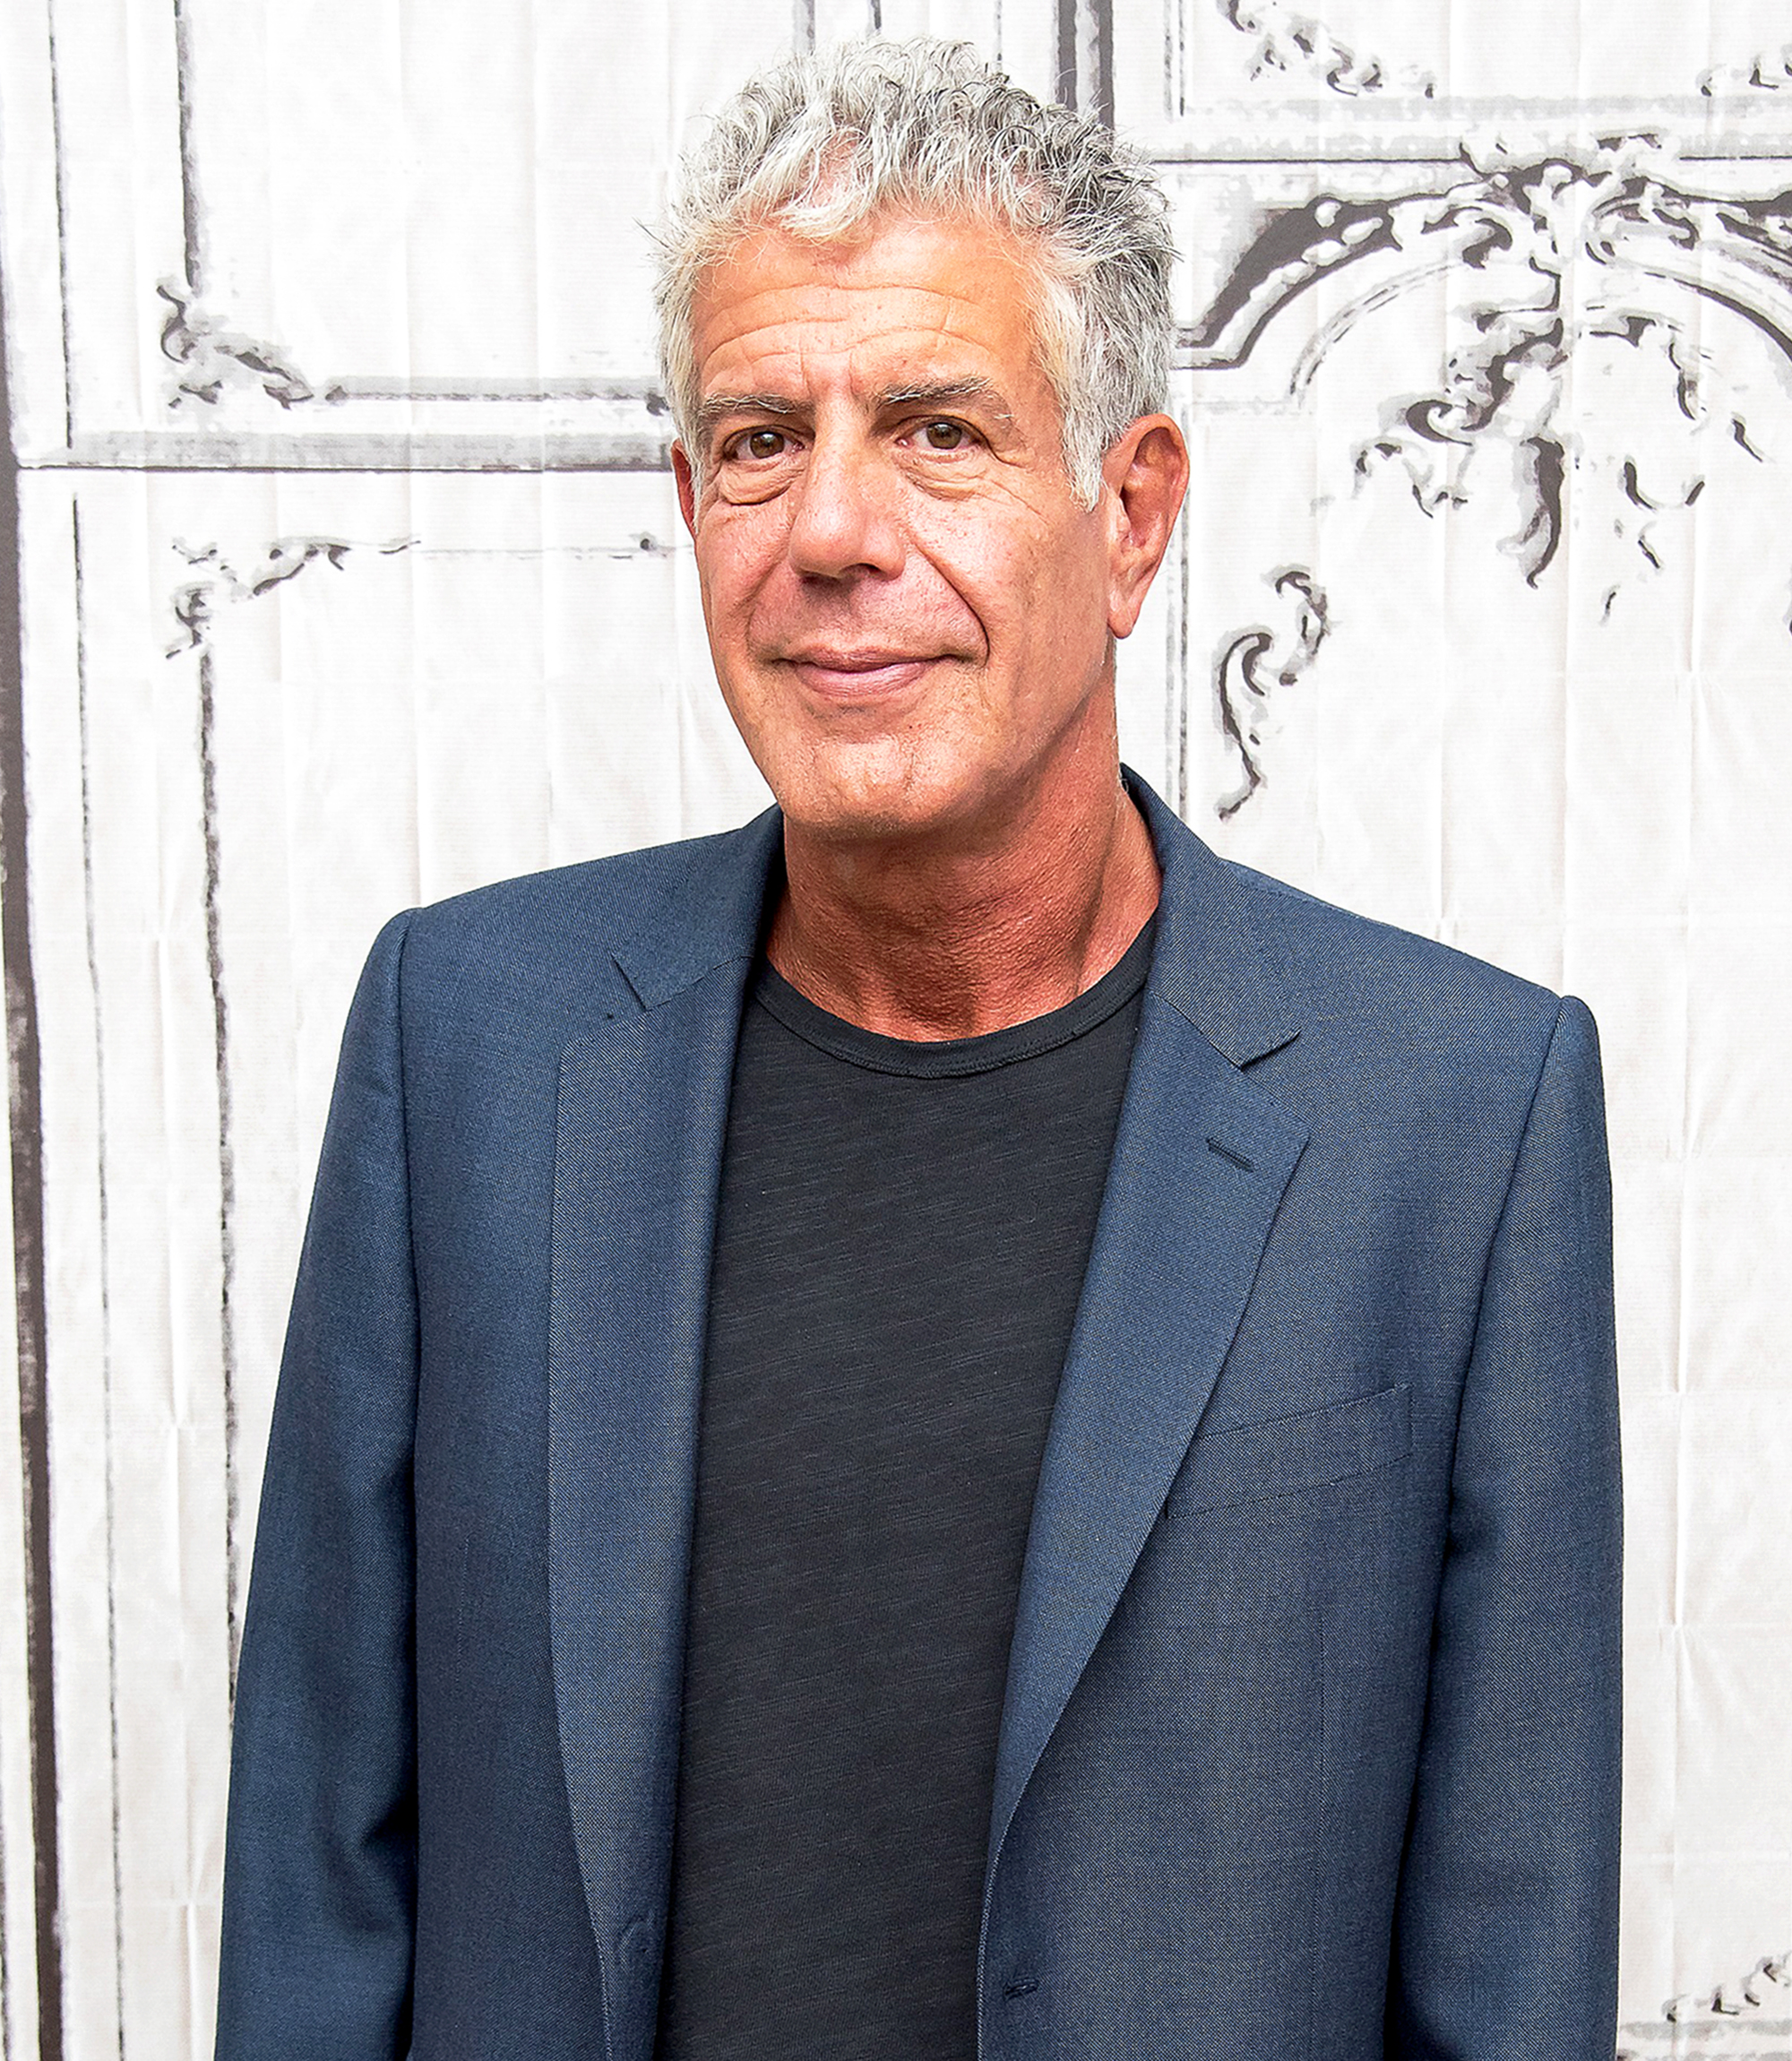 No drugs or alcohol in Anthony Bourdain's body